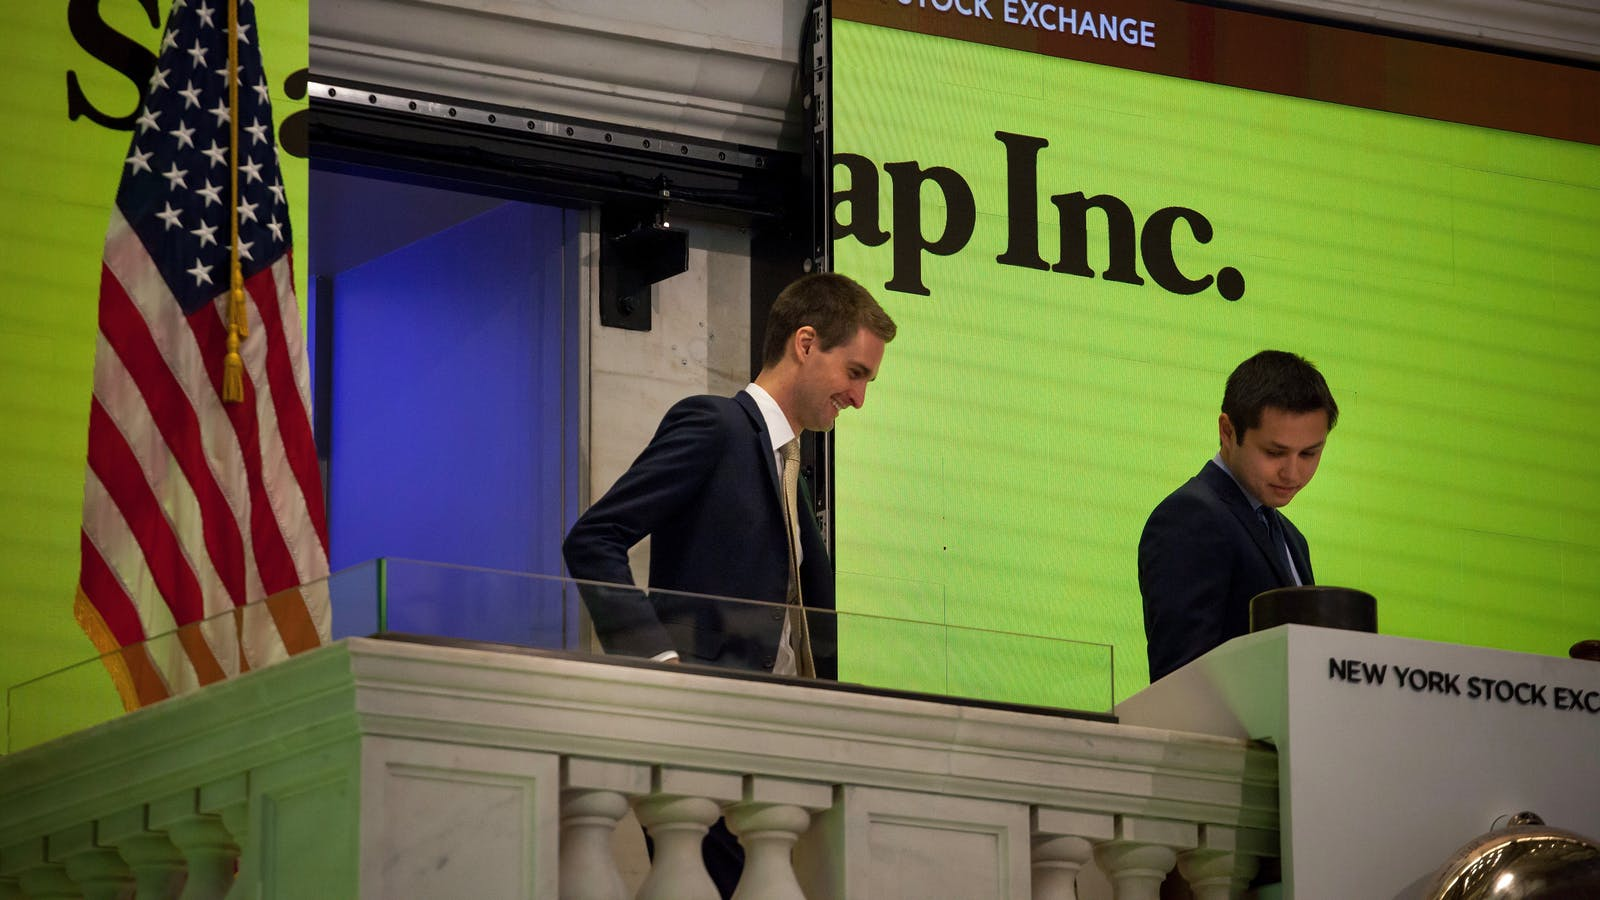 Snap CEO Evan Spiegel and co-founder Bobby Murphy at the New York Stock Exchange when Snap went public earlier this year. Photo by Bloomberg.